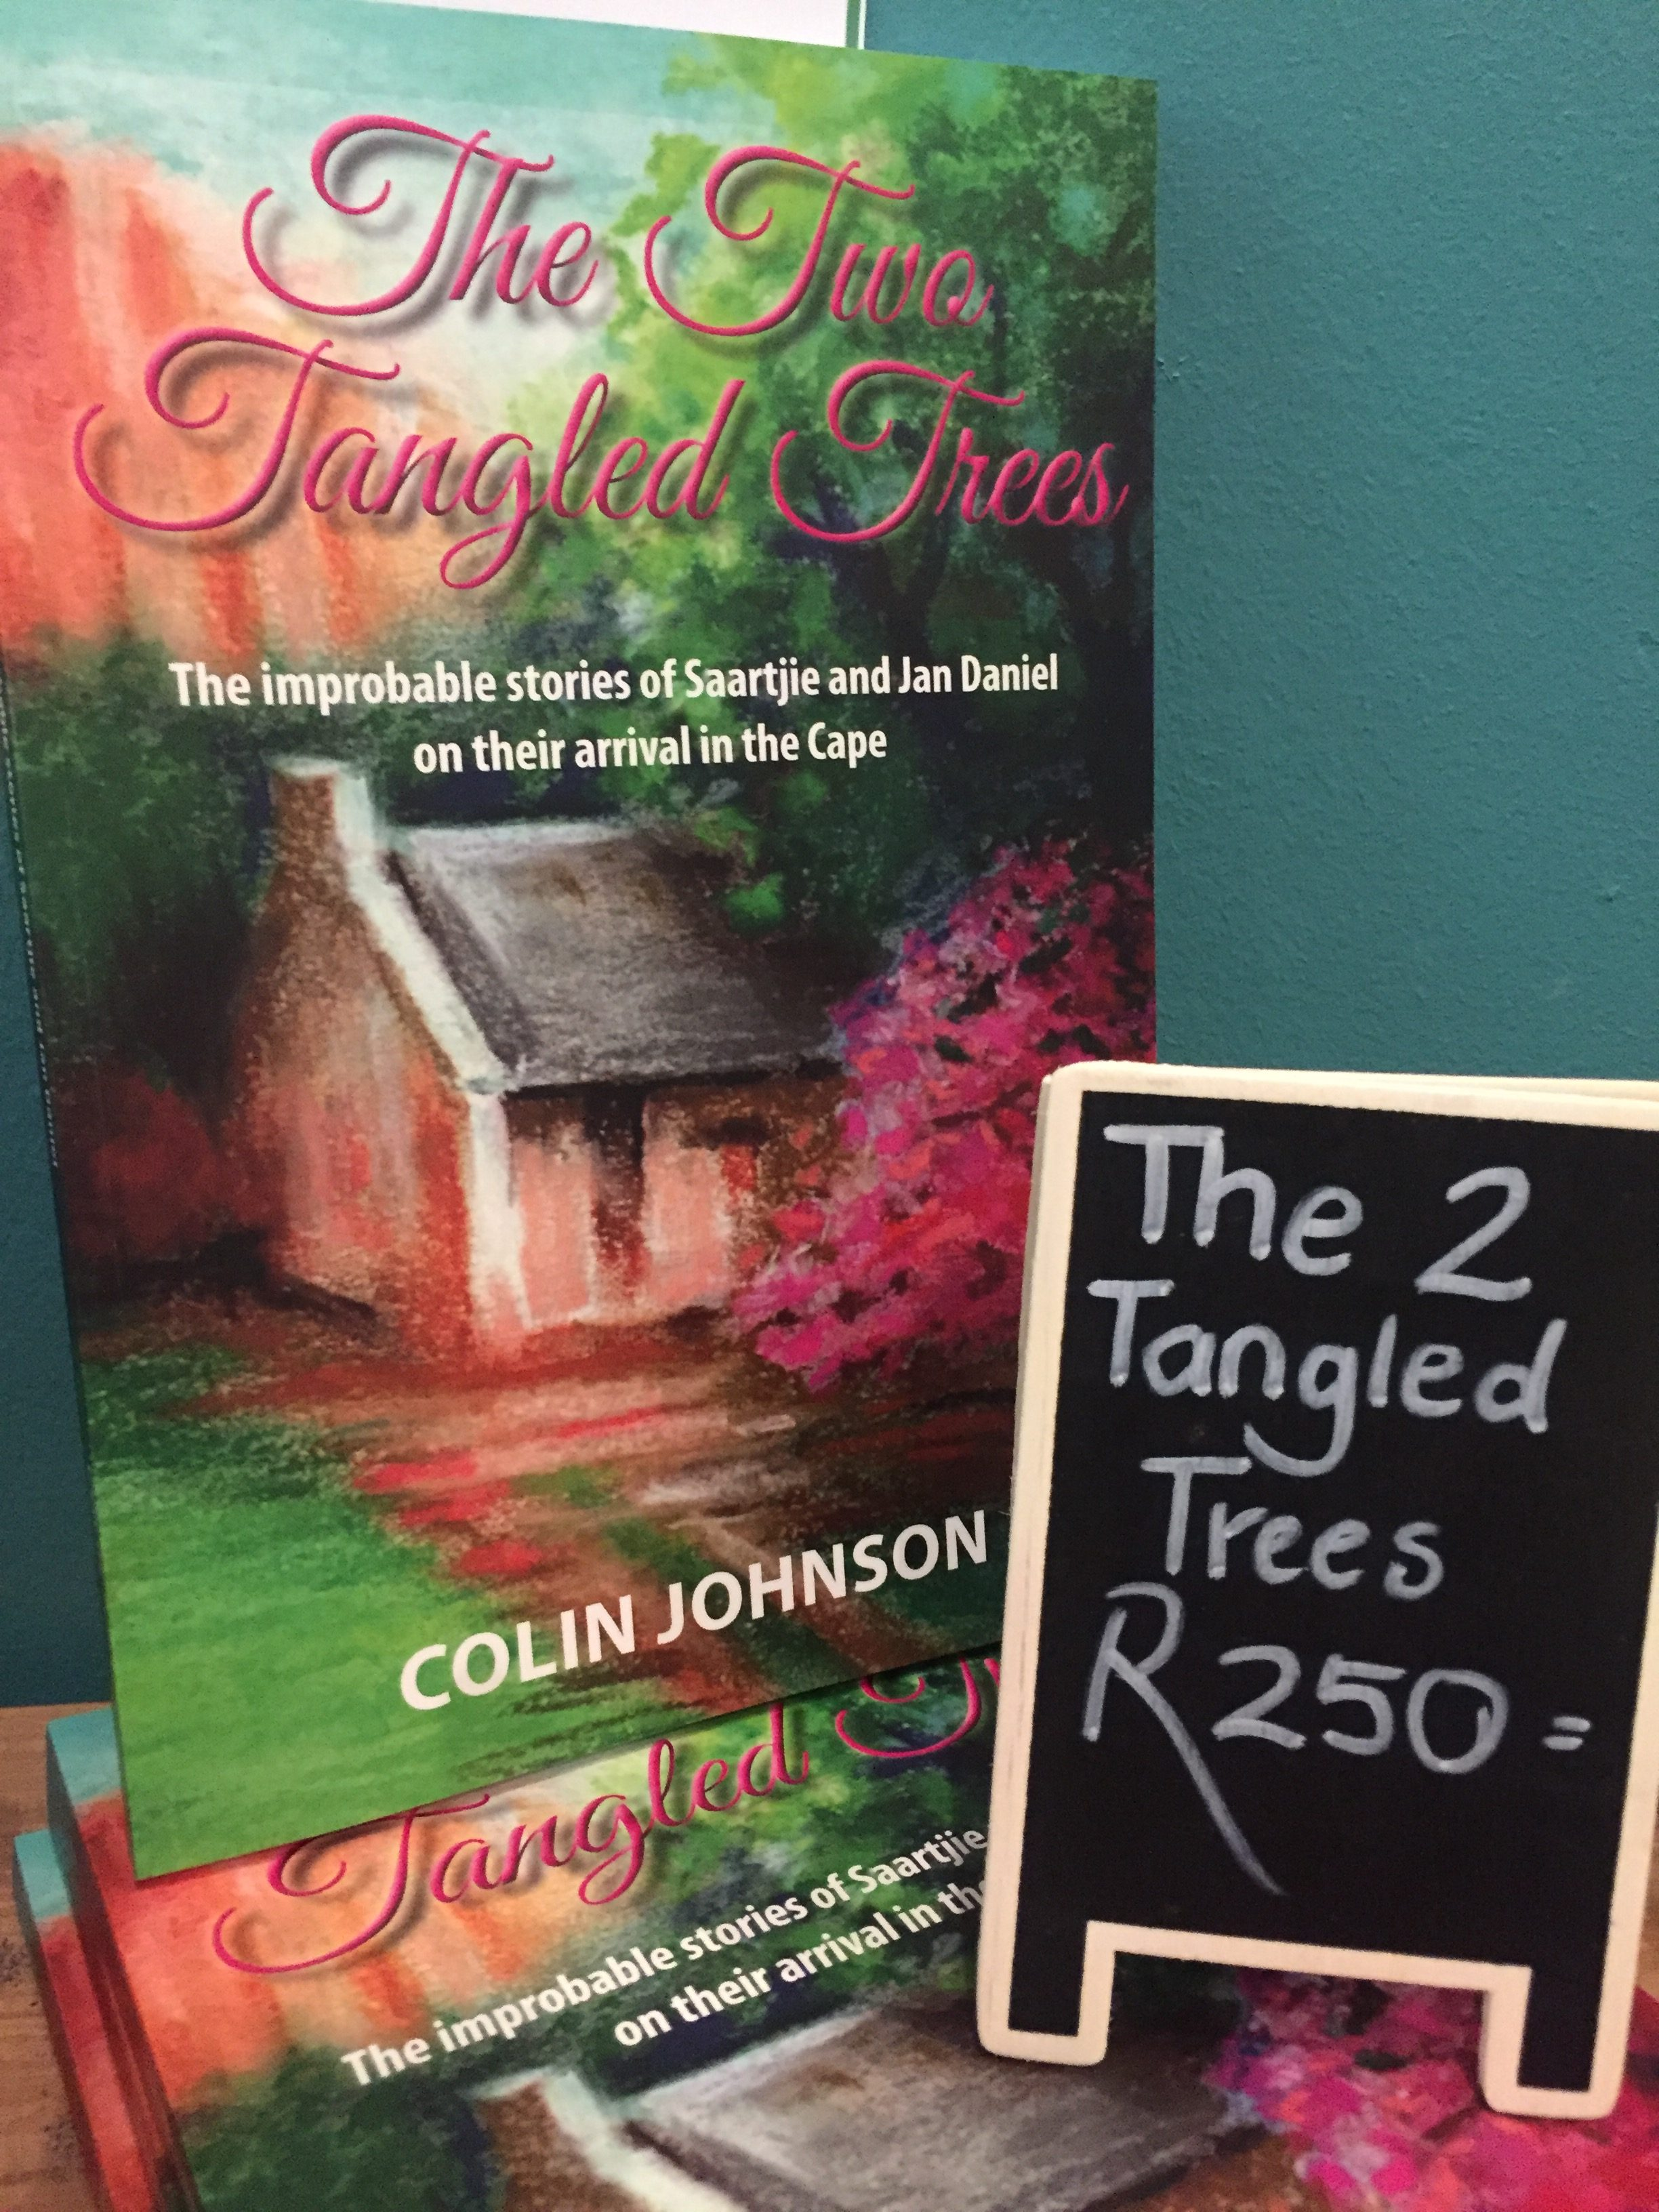 The Two Tangled Trees